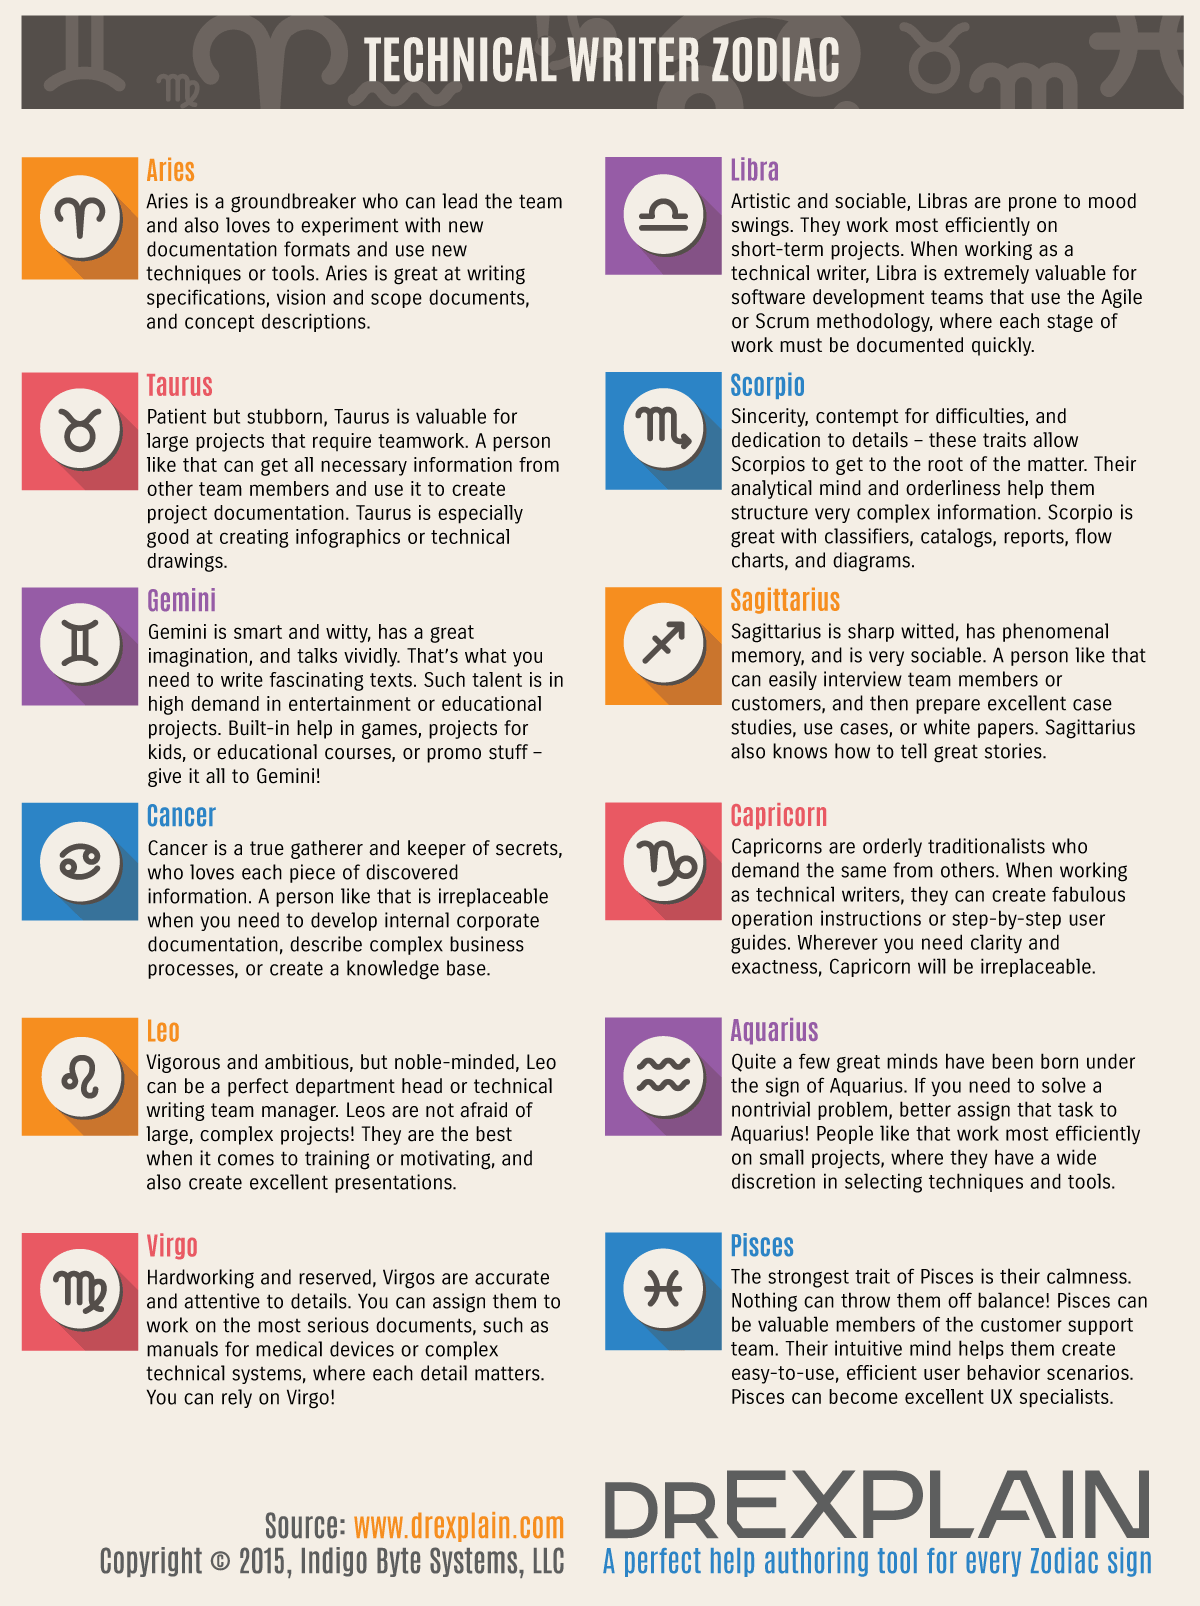 Technical writers by Zodiac signs